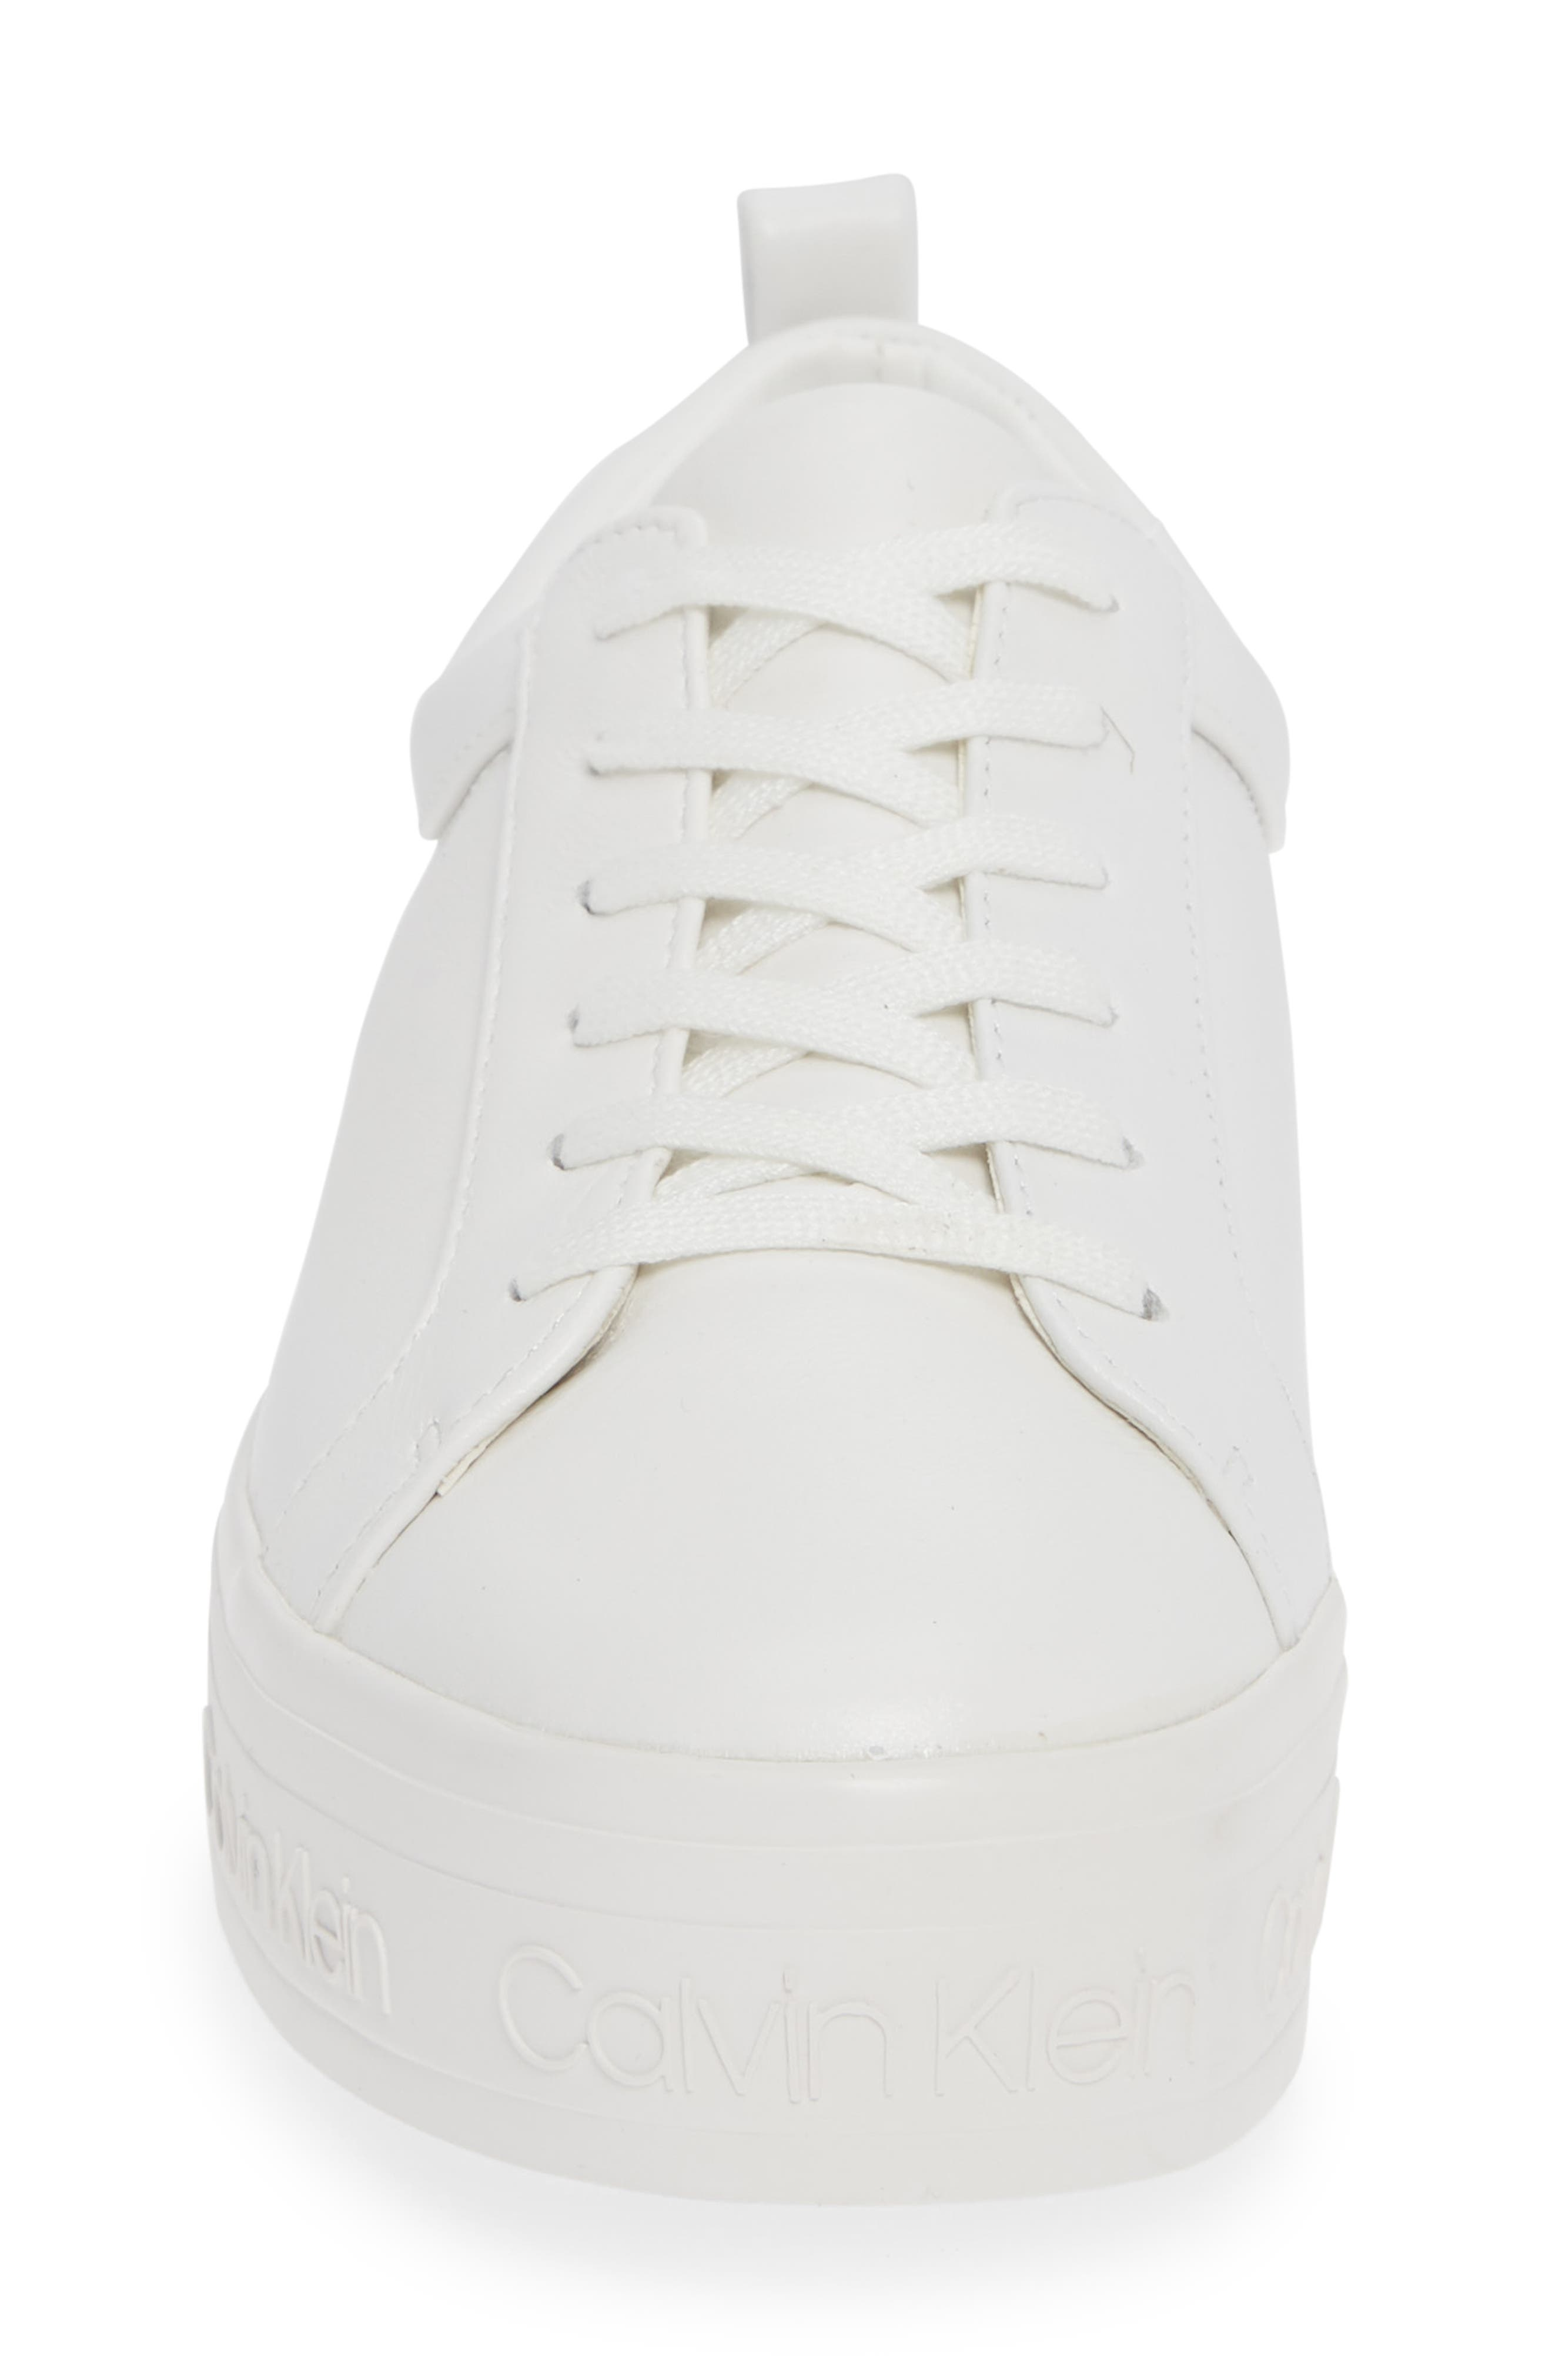 CALVIN KLEIN, Jaelee Sneaker, Alternate thumbnail 4, color, WHITE NAPPA LEATHER